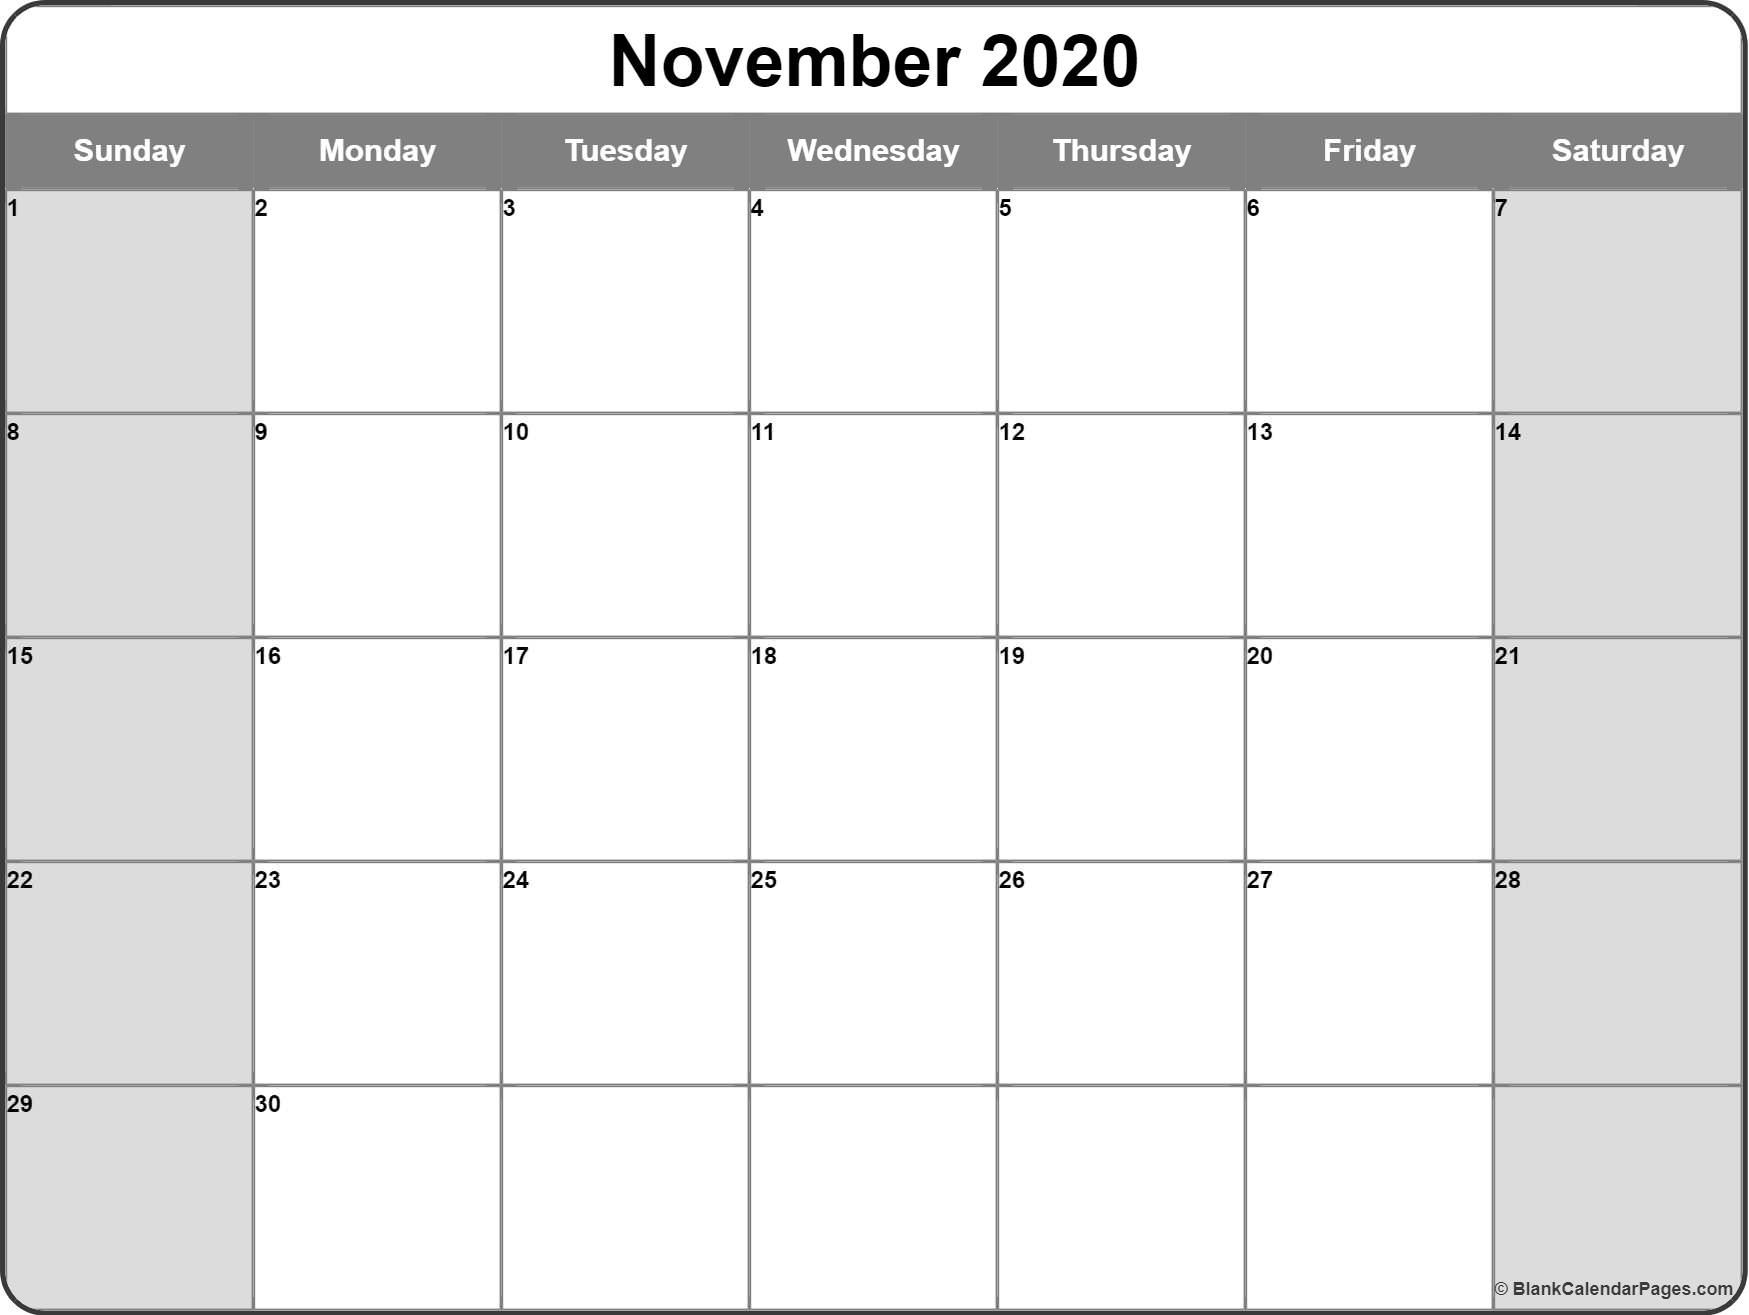 November 2020 Calendar | Free Printable Monthly Calendars throughout Printable Chalander With Space To Right For 2020